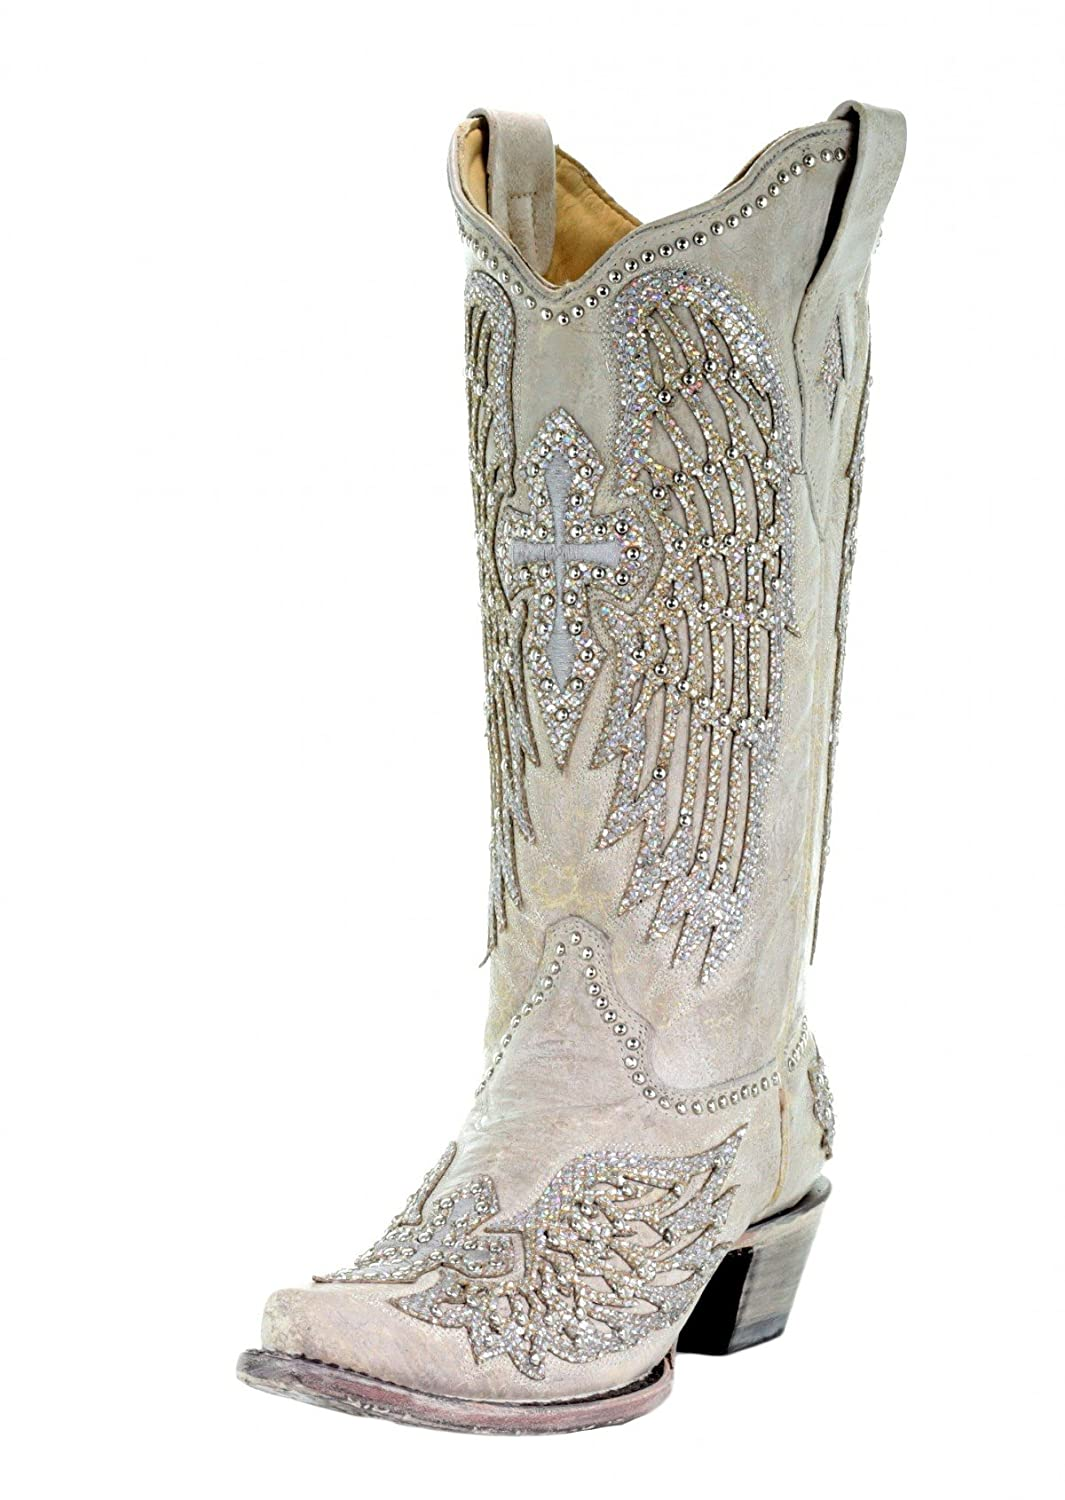 CORRAL A3571 White Cross and Wings Boots B07C58711K 11 B(M) US